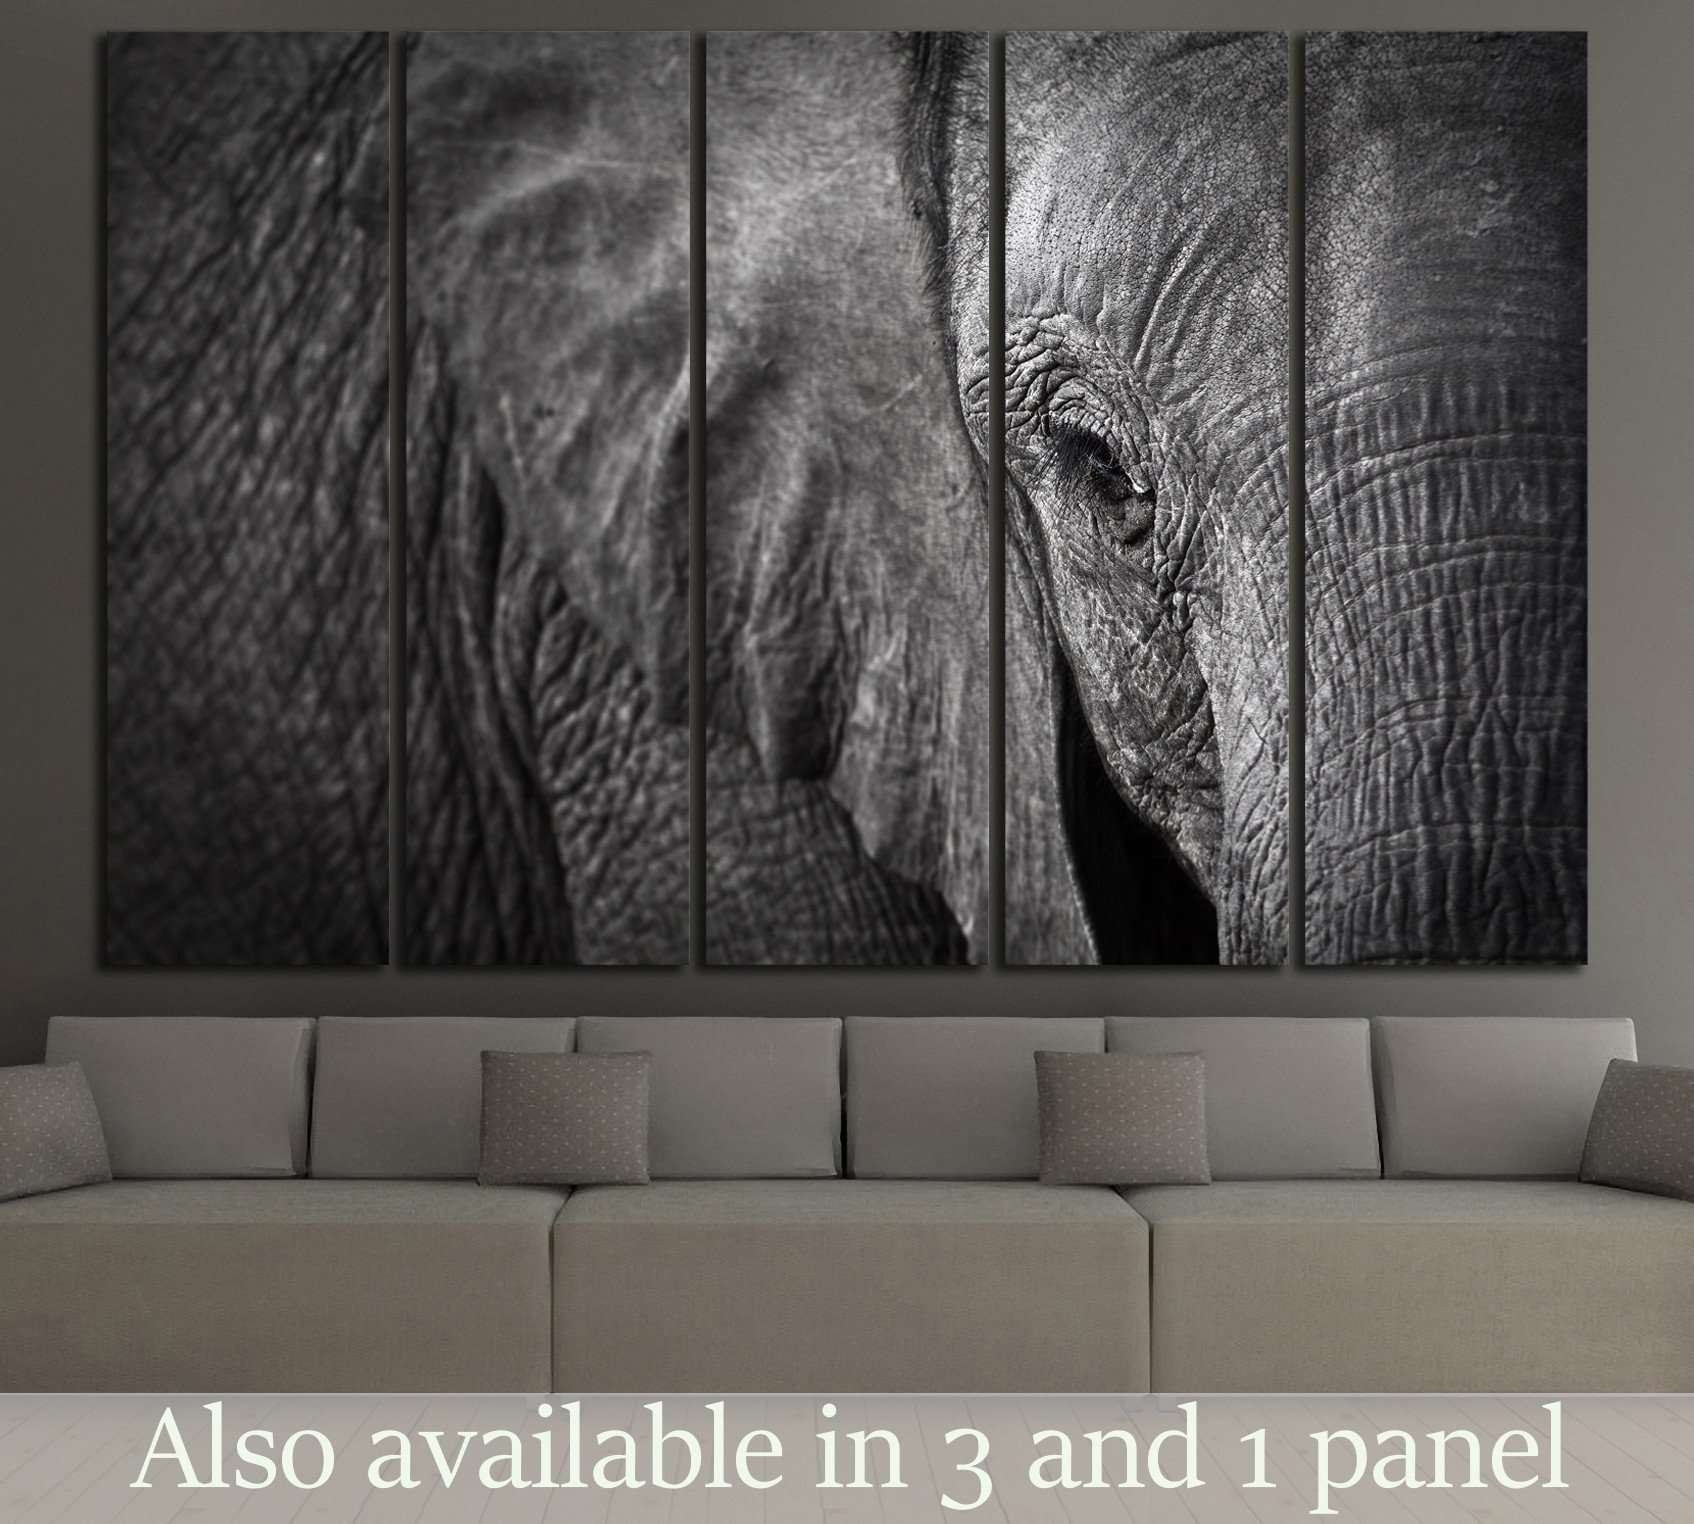 Wall art elephant - Shop For Elephant Wall Art At Zellart S 1330 S 1834 S 1846 S 3262 Wd 192 Wd 193 Wd 194 Wd 195 Wd 196